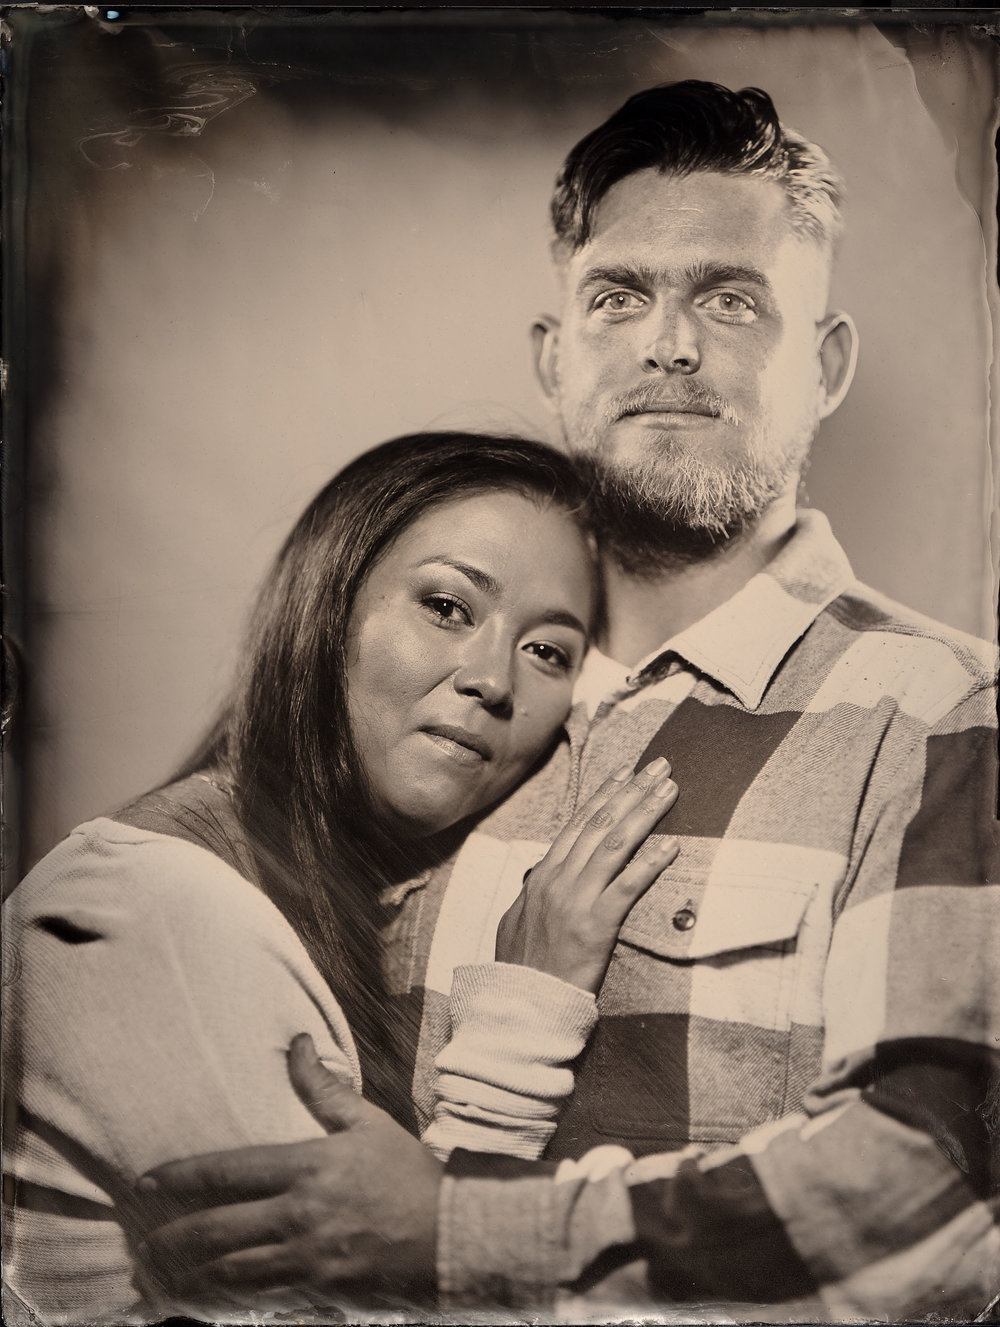 Tim with his wife Jacky Johannsen celebrating their ten year anniversary by taking a tintype portrait together.